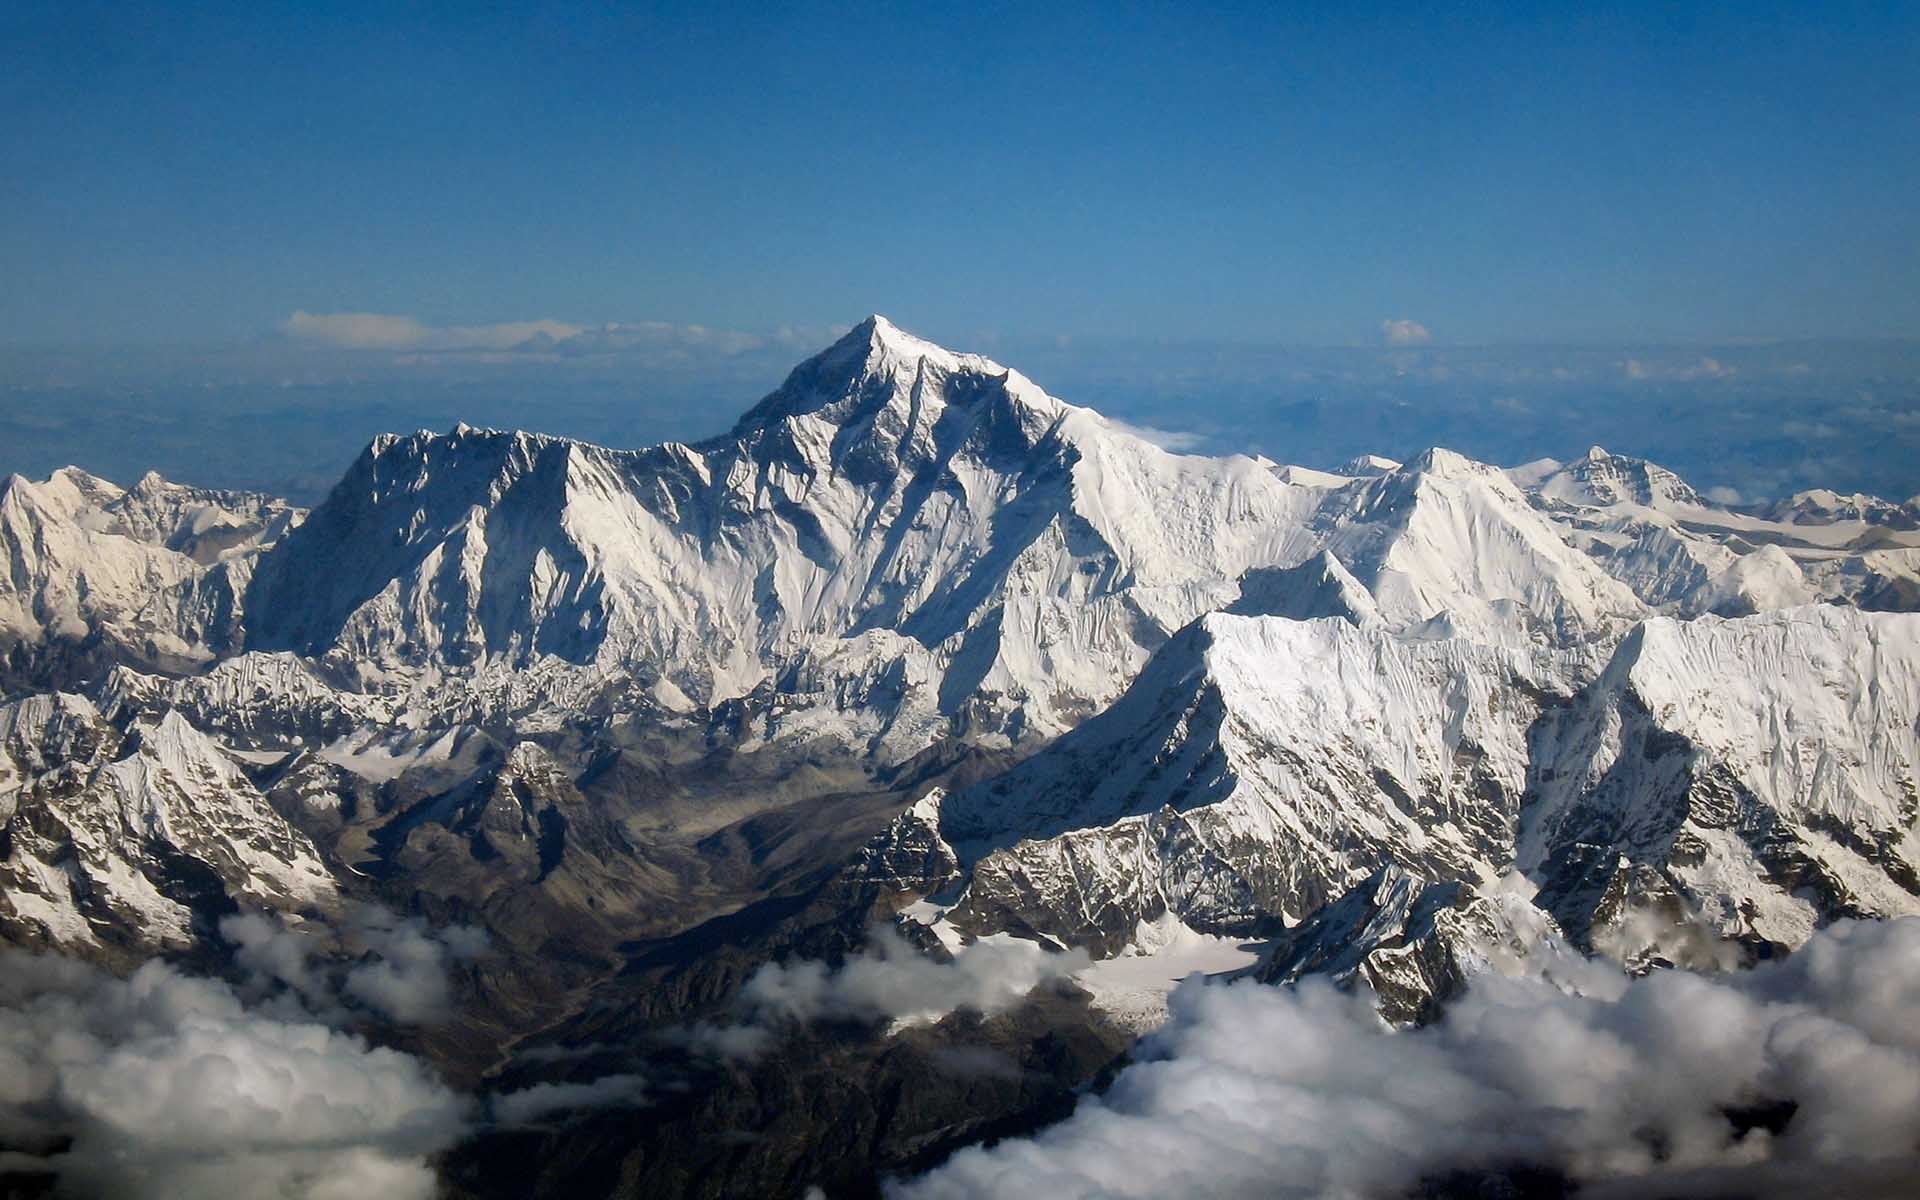 No One to Blame for ASKfm's Tragic Mt. Everest Expedition